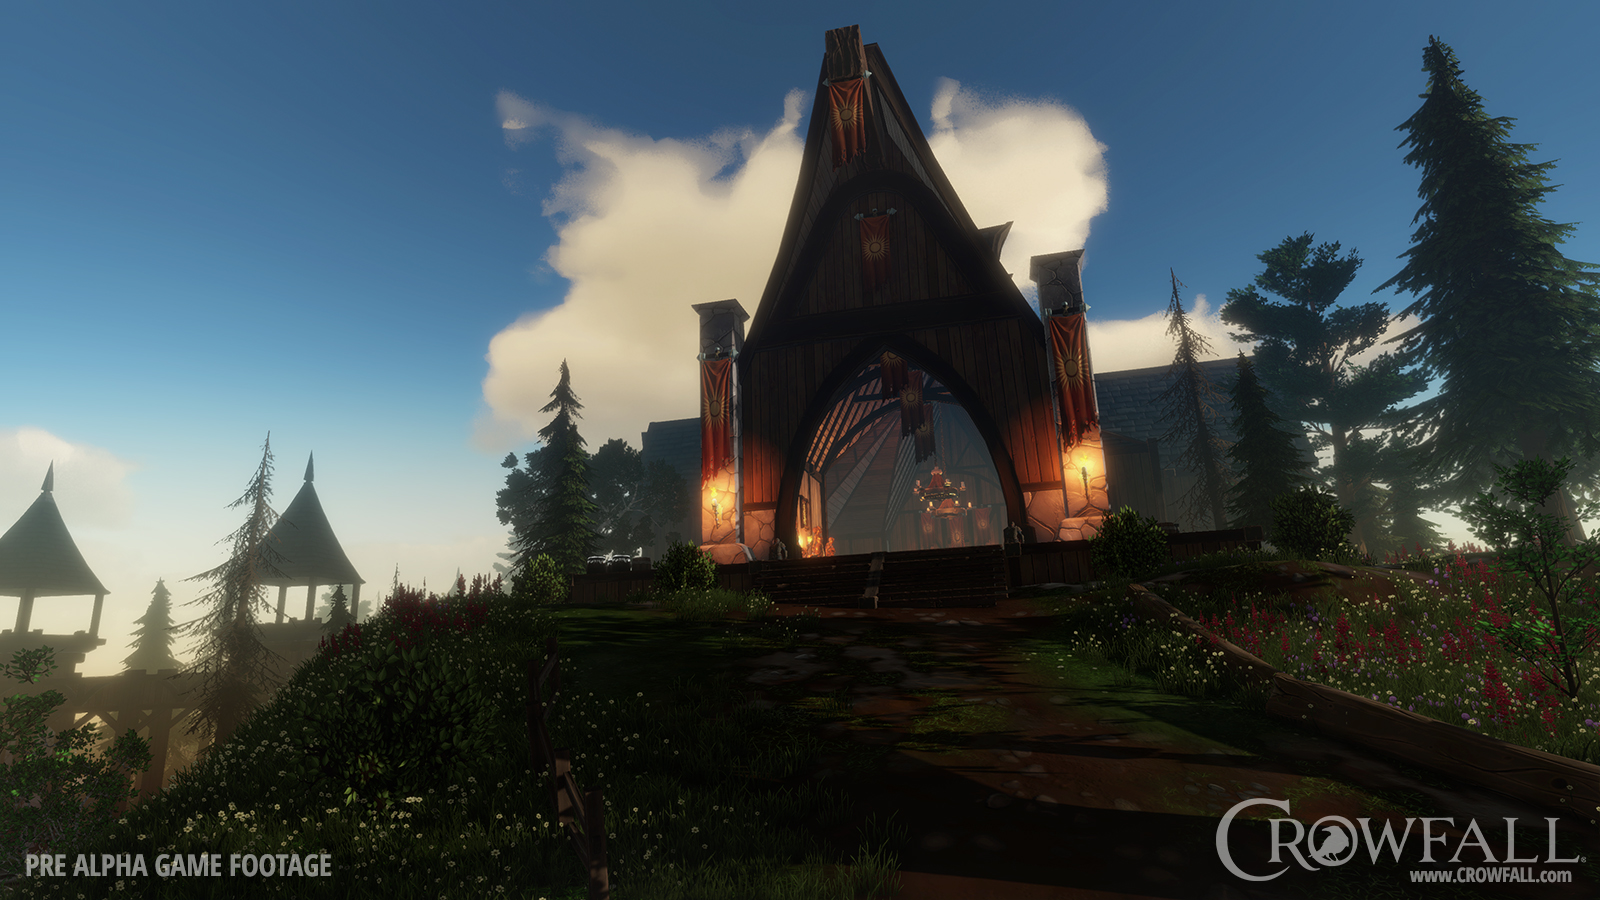 Crowfall GameFootage 3